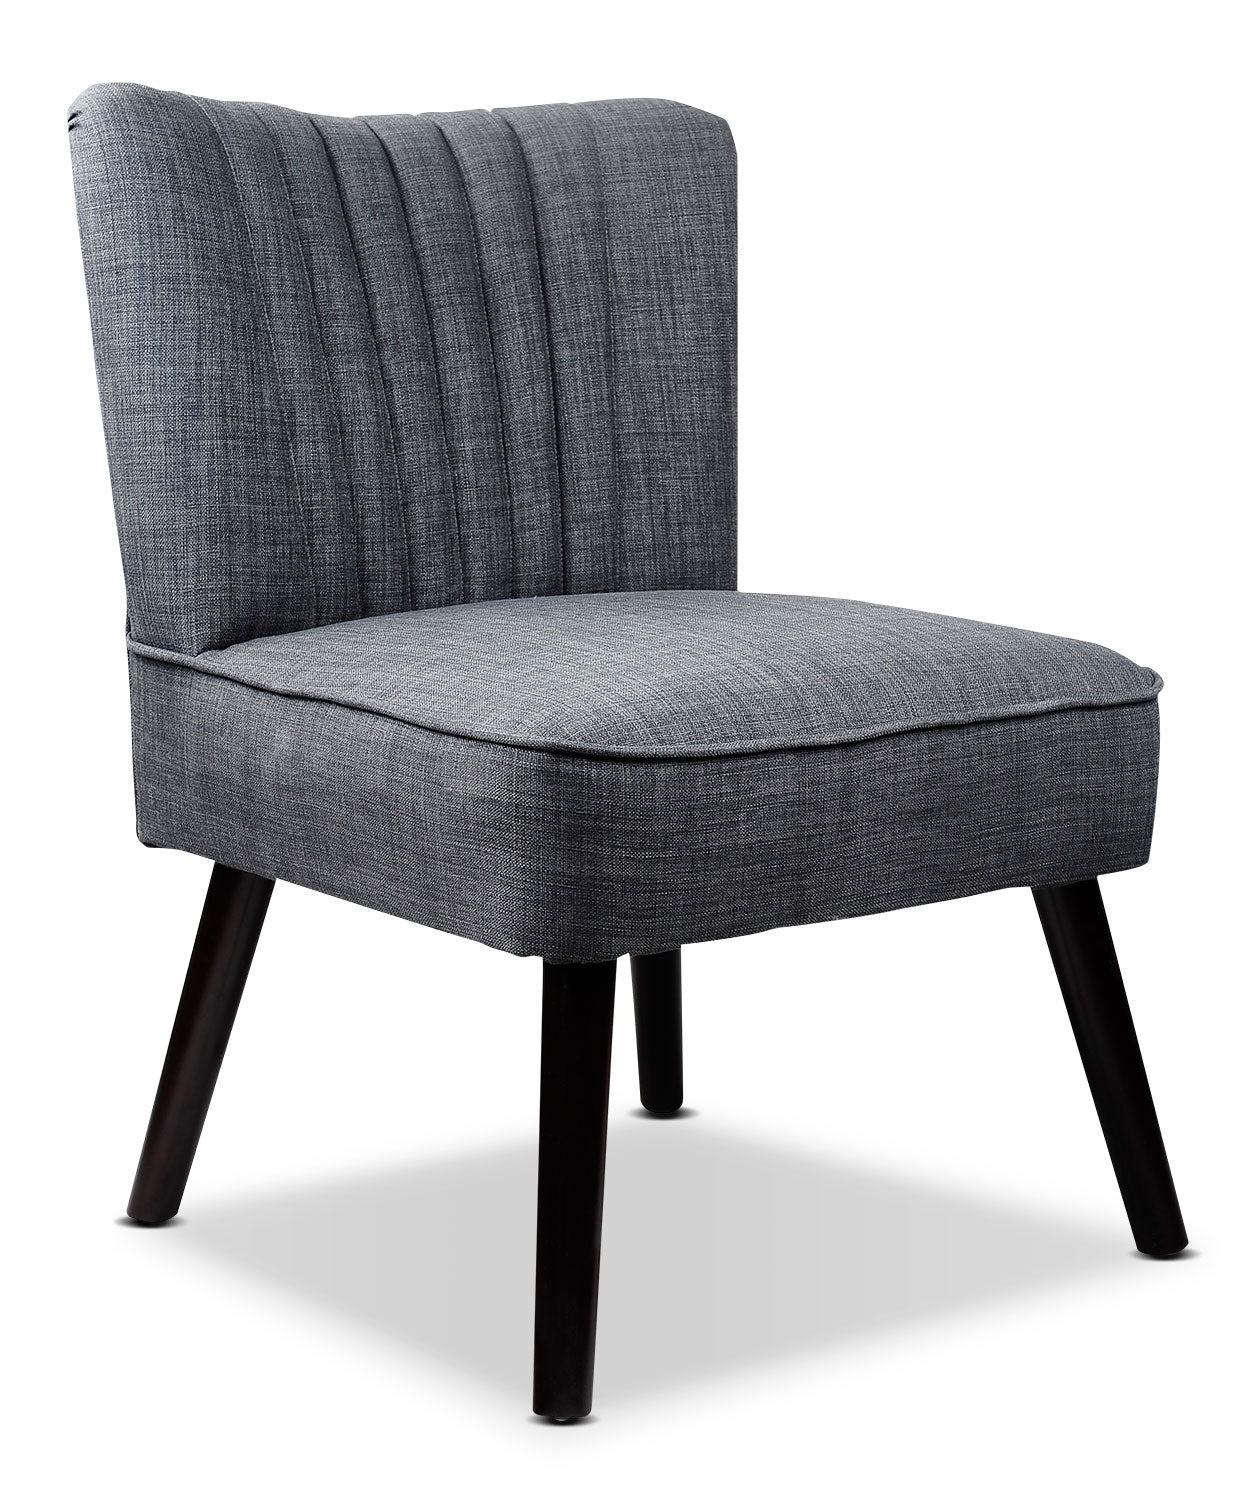 Lad Linen Like Fabric Accent Chair Grey The Brick